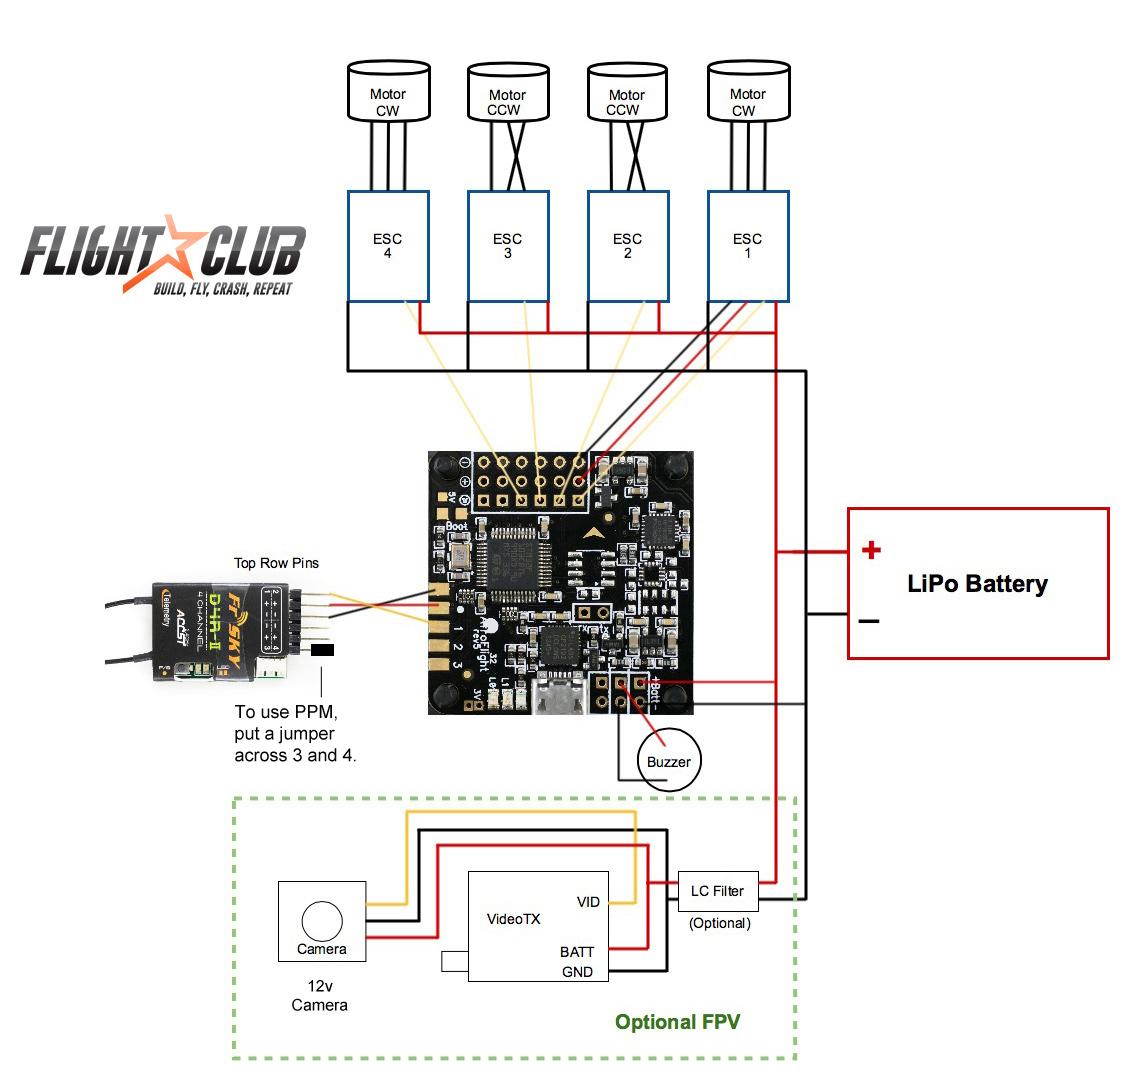 Wiring Diagram Power Saver Wire Data Schema Th8320wf1029 Learn How To Build Best Fpv Quadcopter Flightclub Boiler